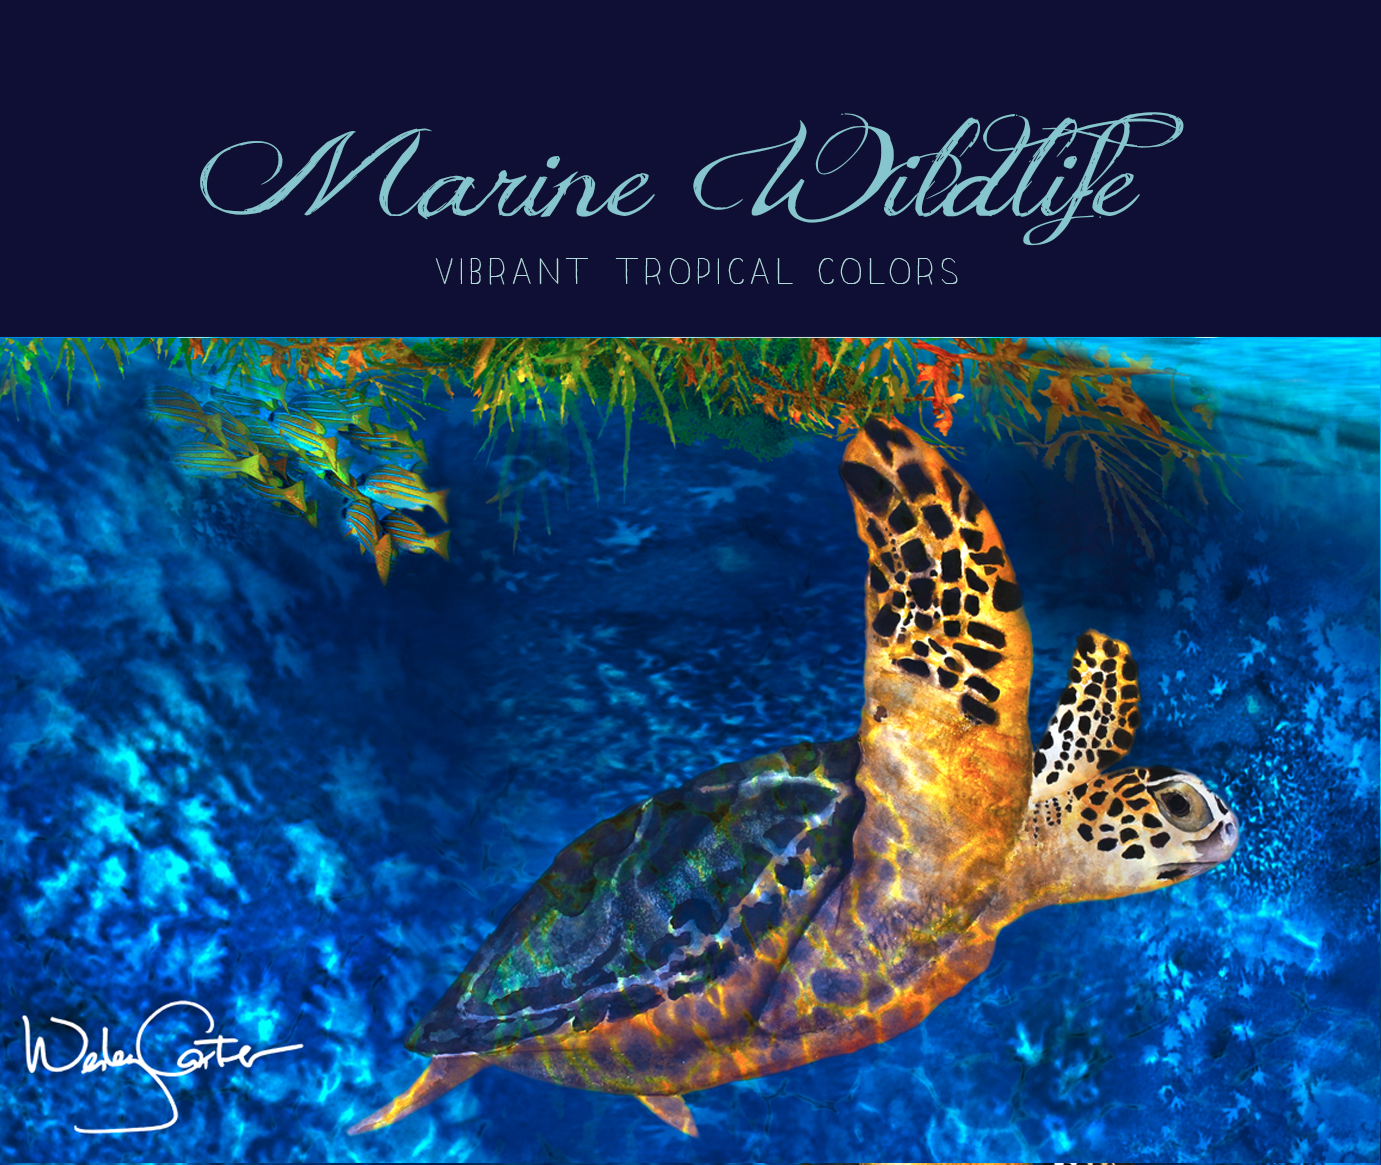 2Marine Wildlife